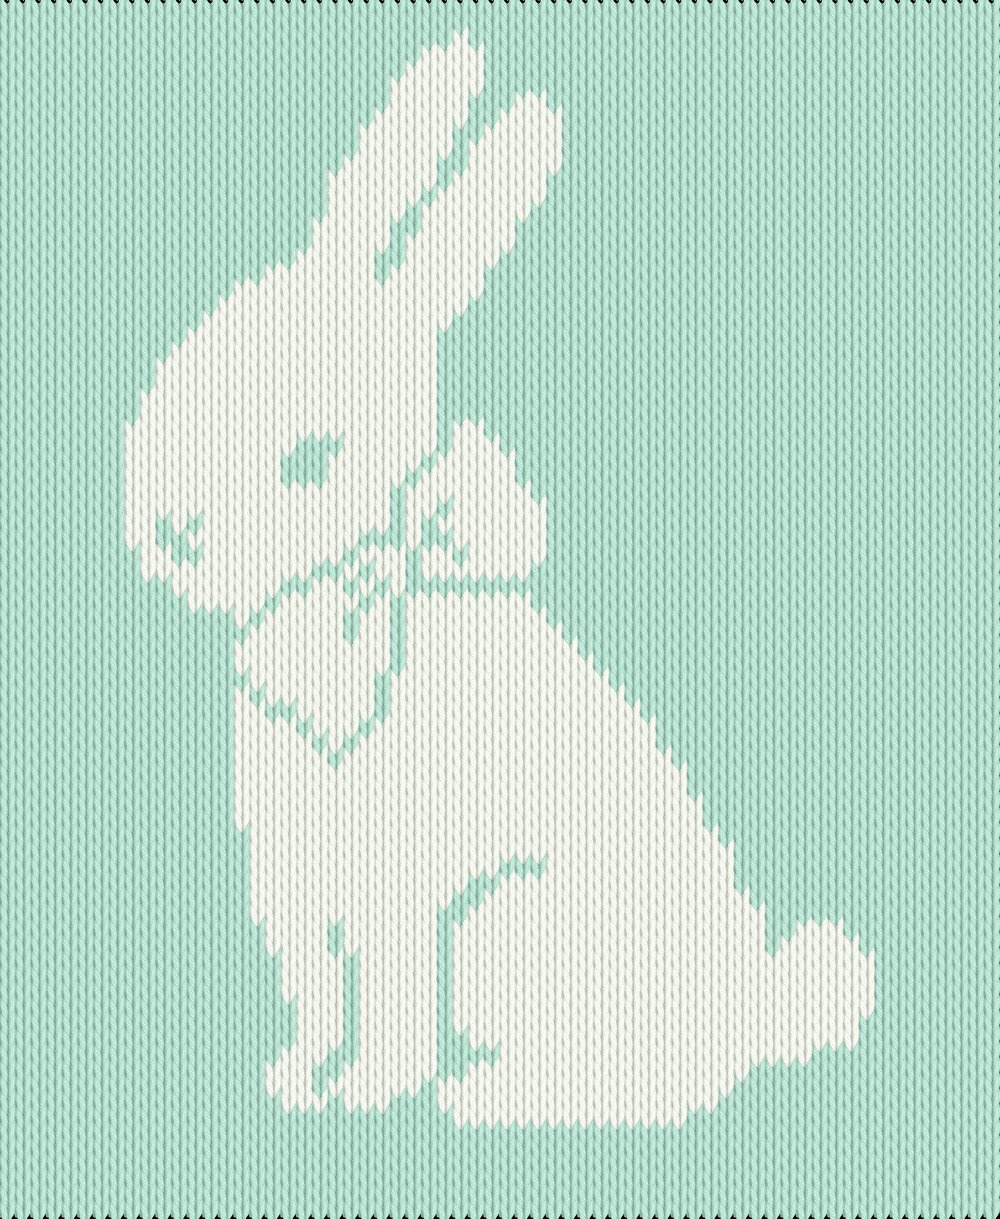 Knitting motif chart, bunny with bow